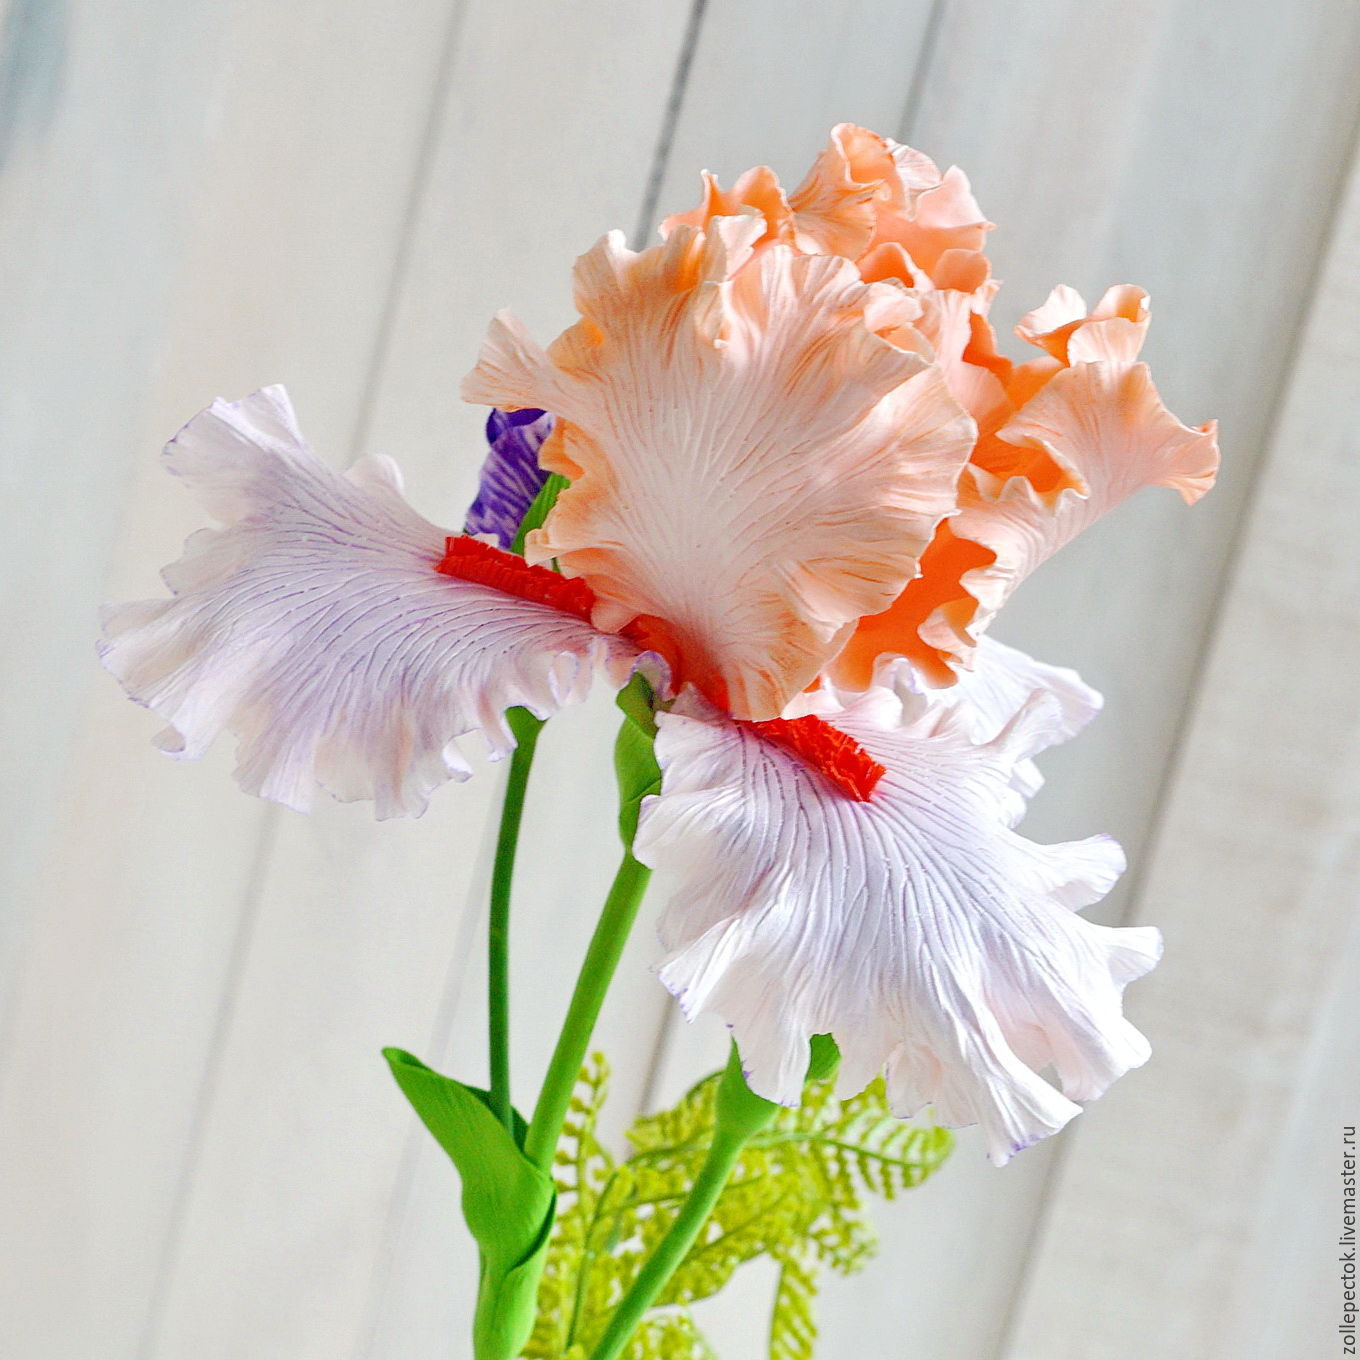 The iris flower romantic shop online on livemaster with shipping flowers handmade livemaster handmade buy the iris flower romantic izmirmasajfo